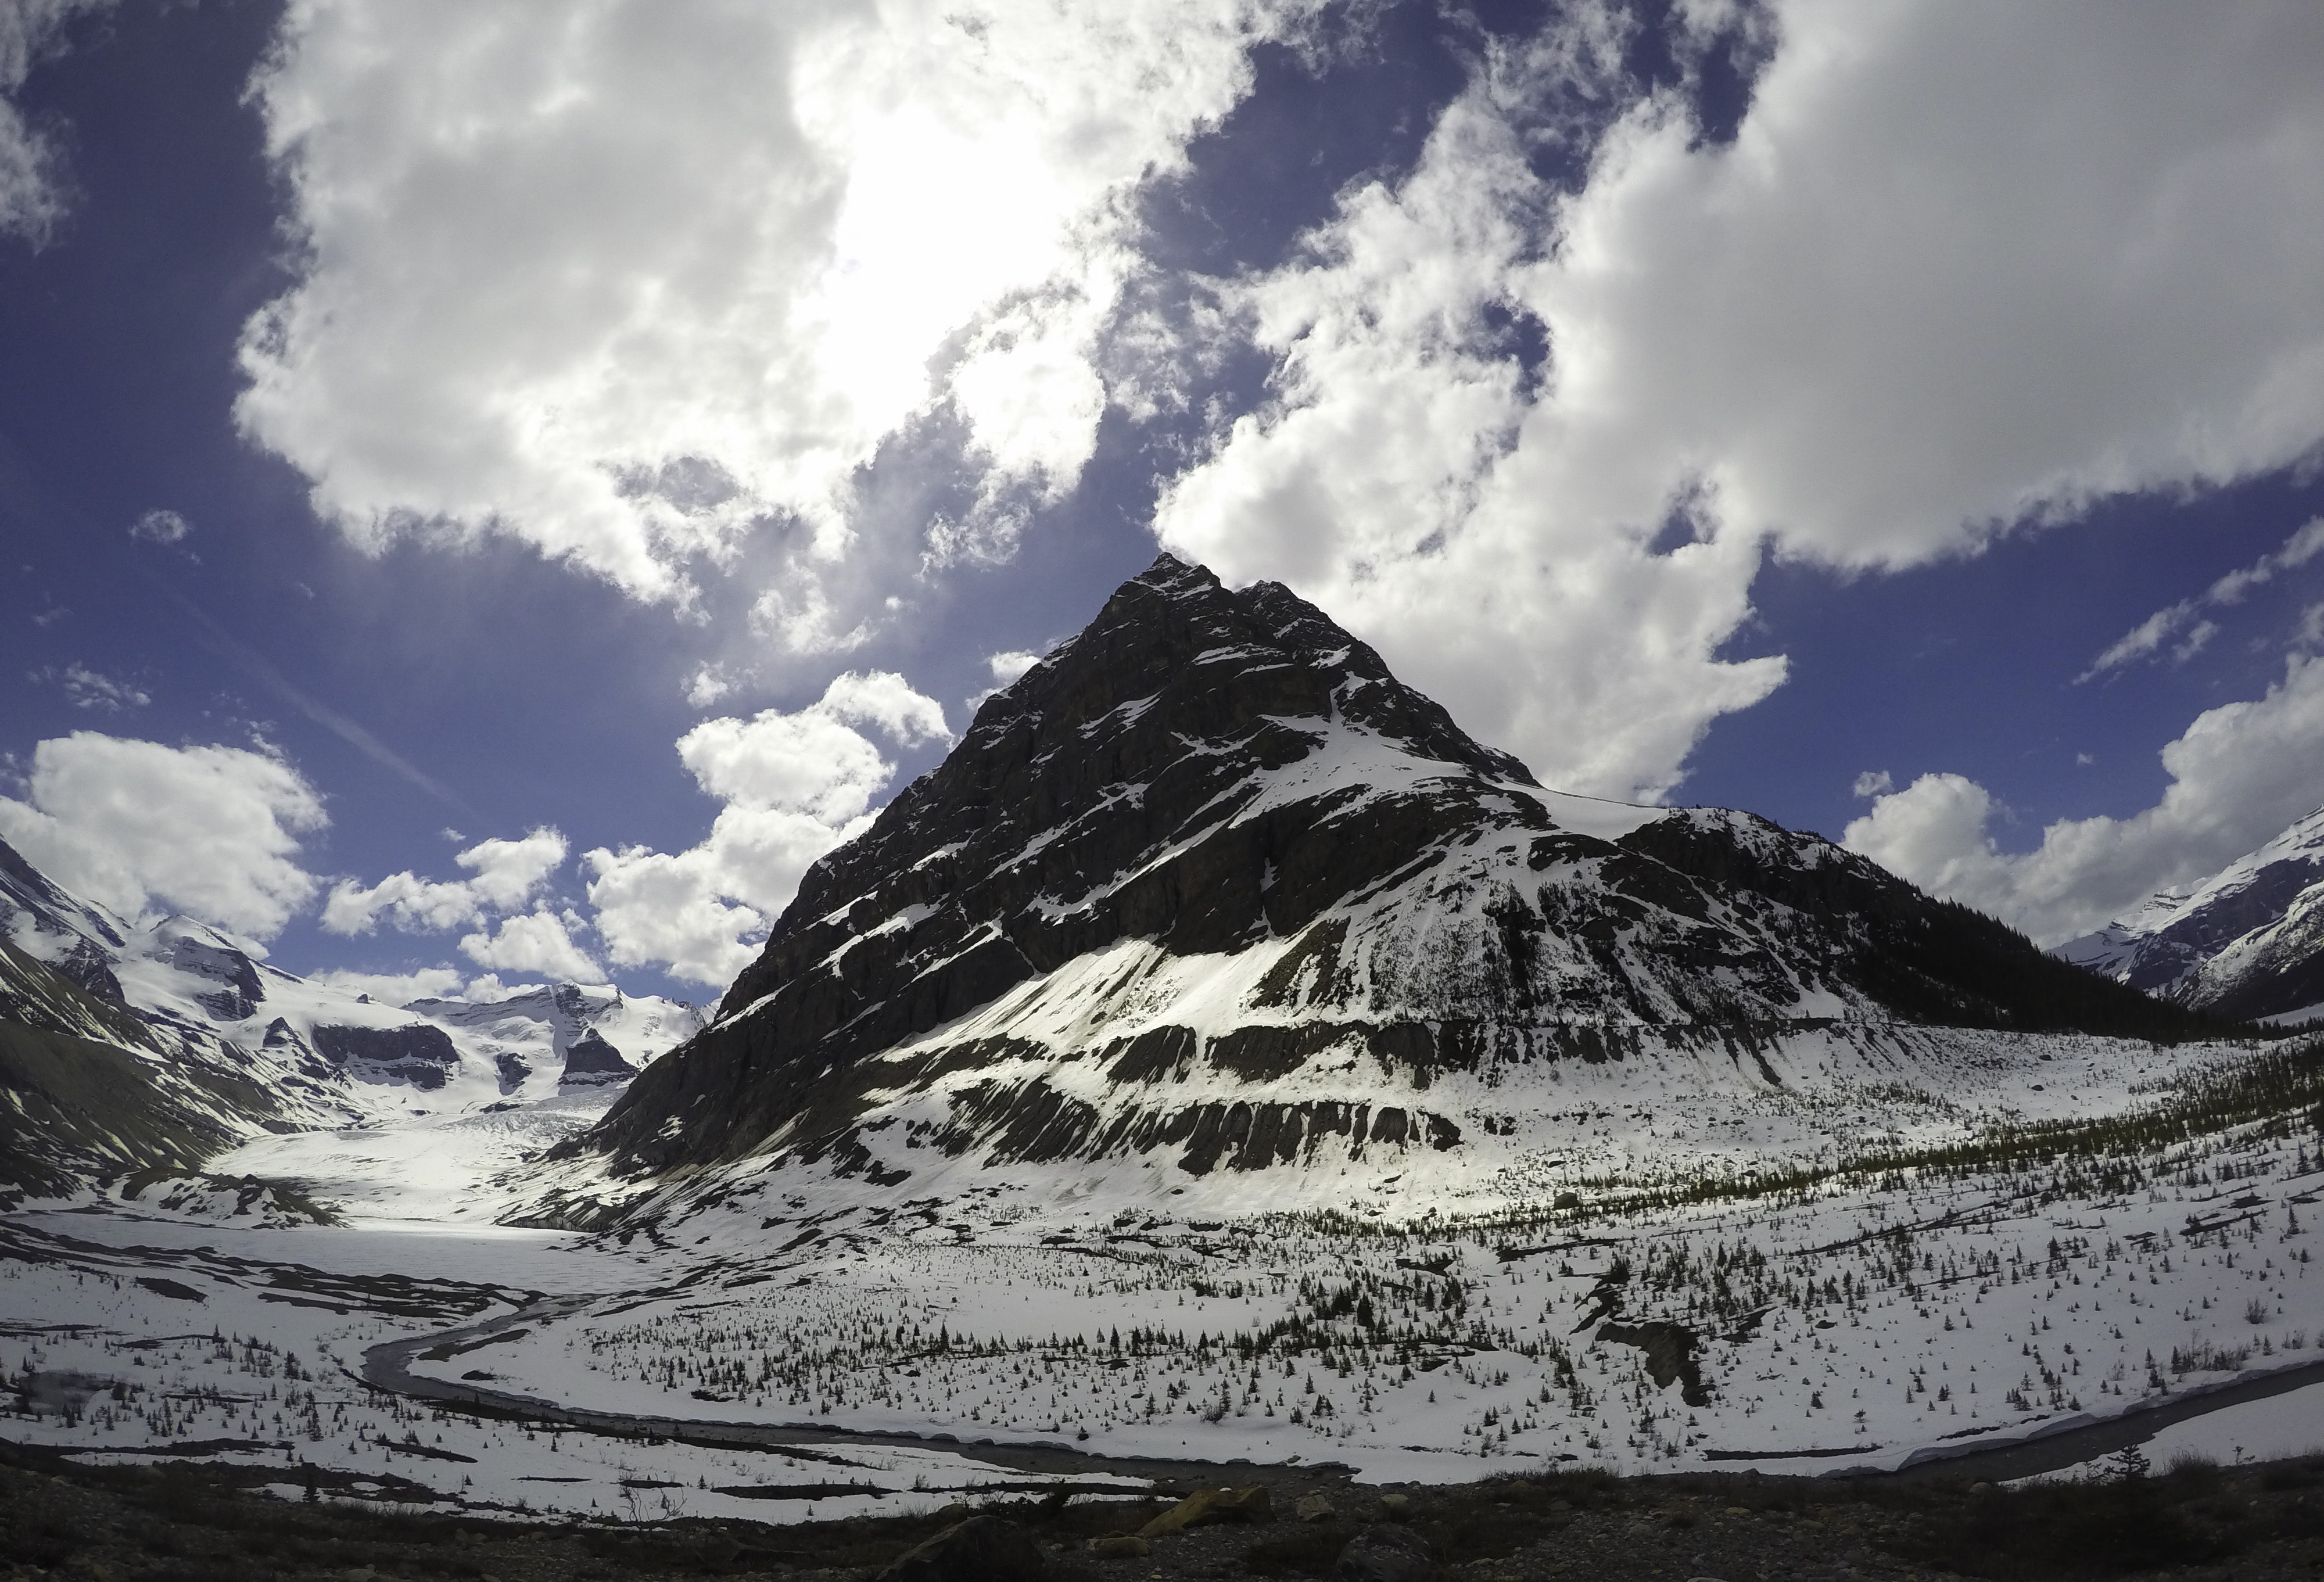 Fluffy clouds flit past the snowy rocky valley of Mount Robson